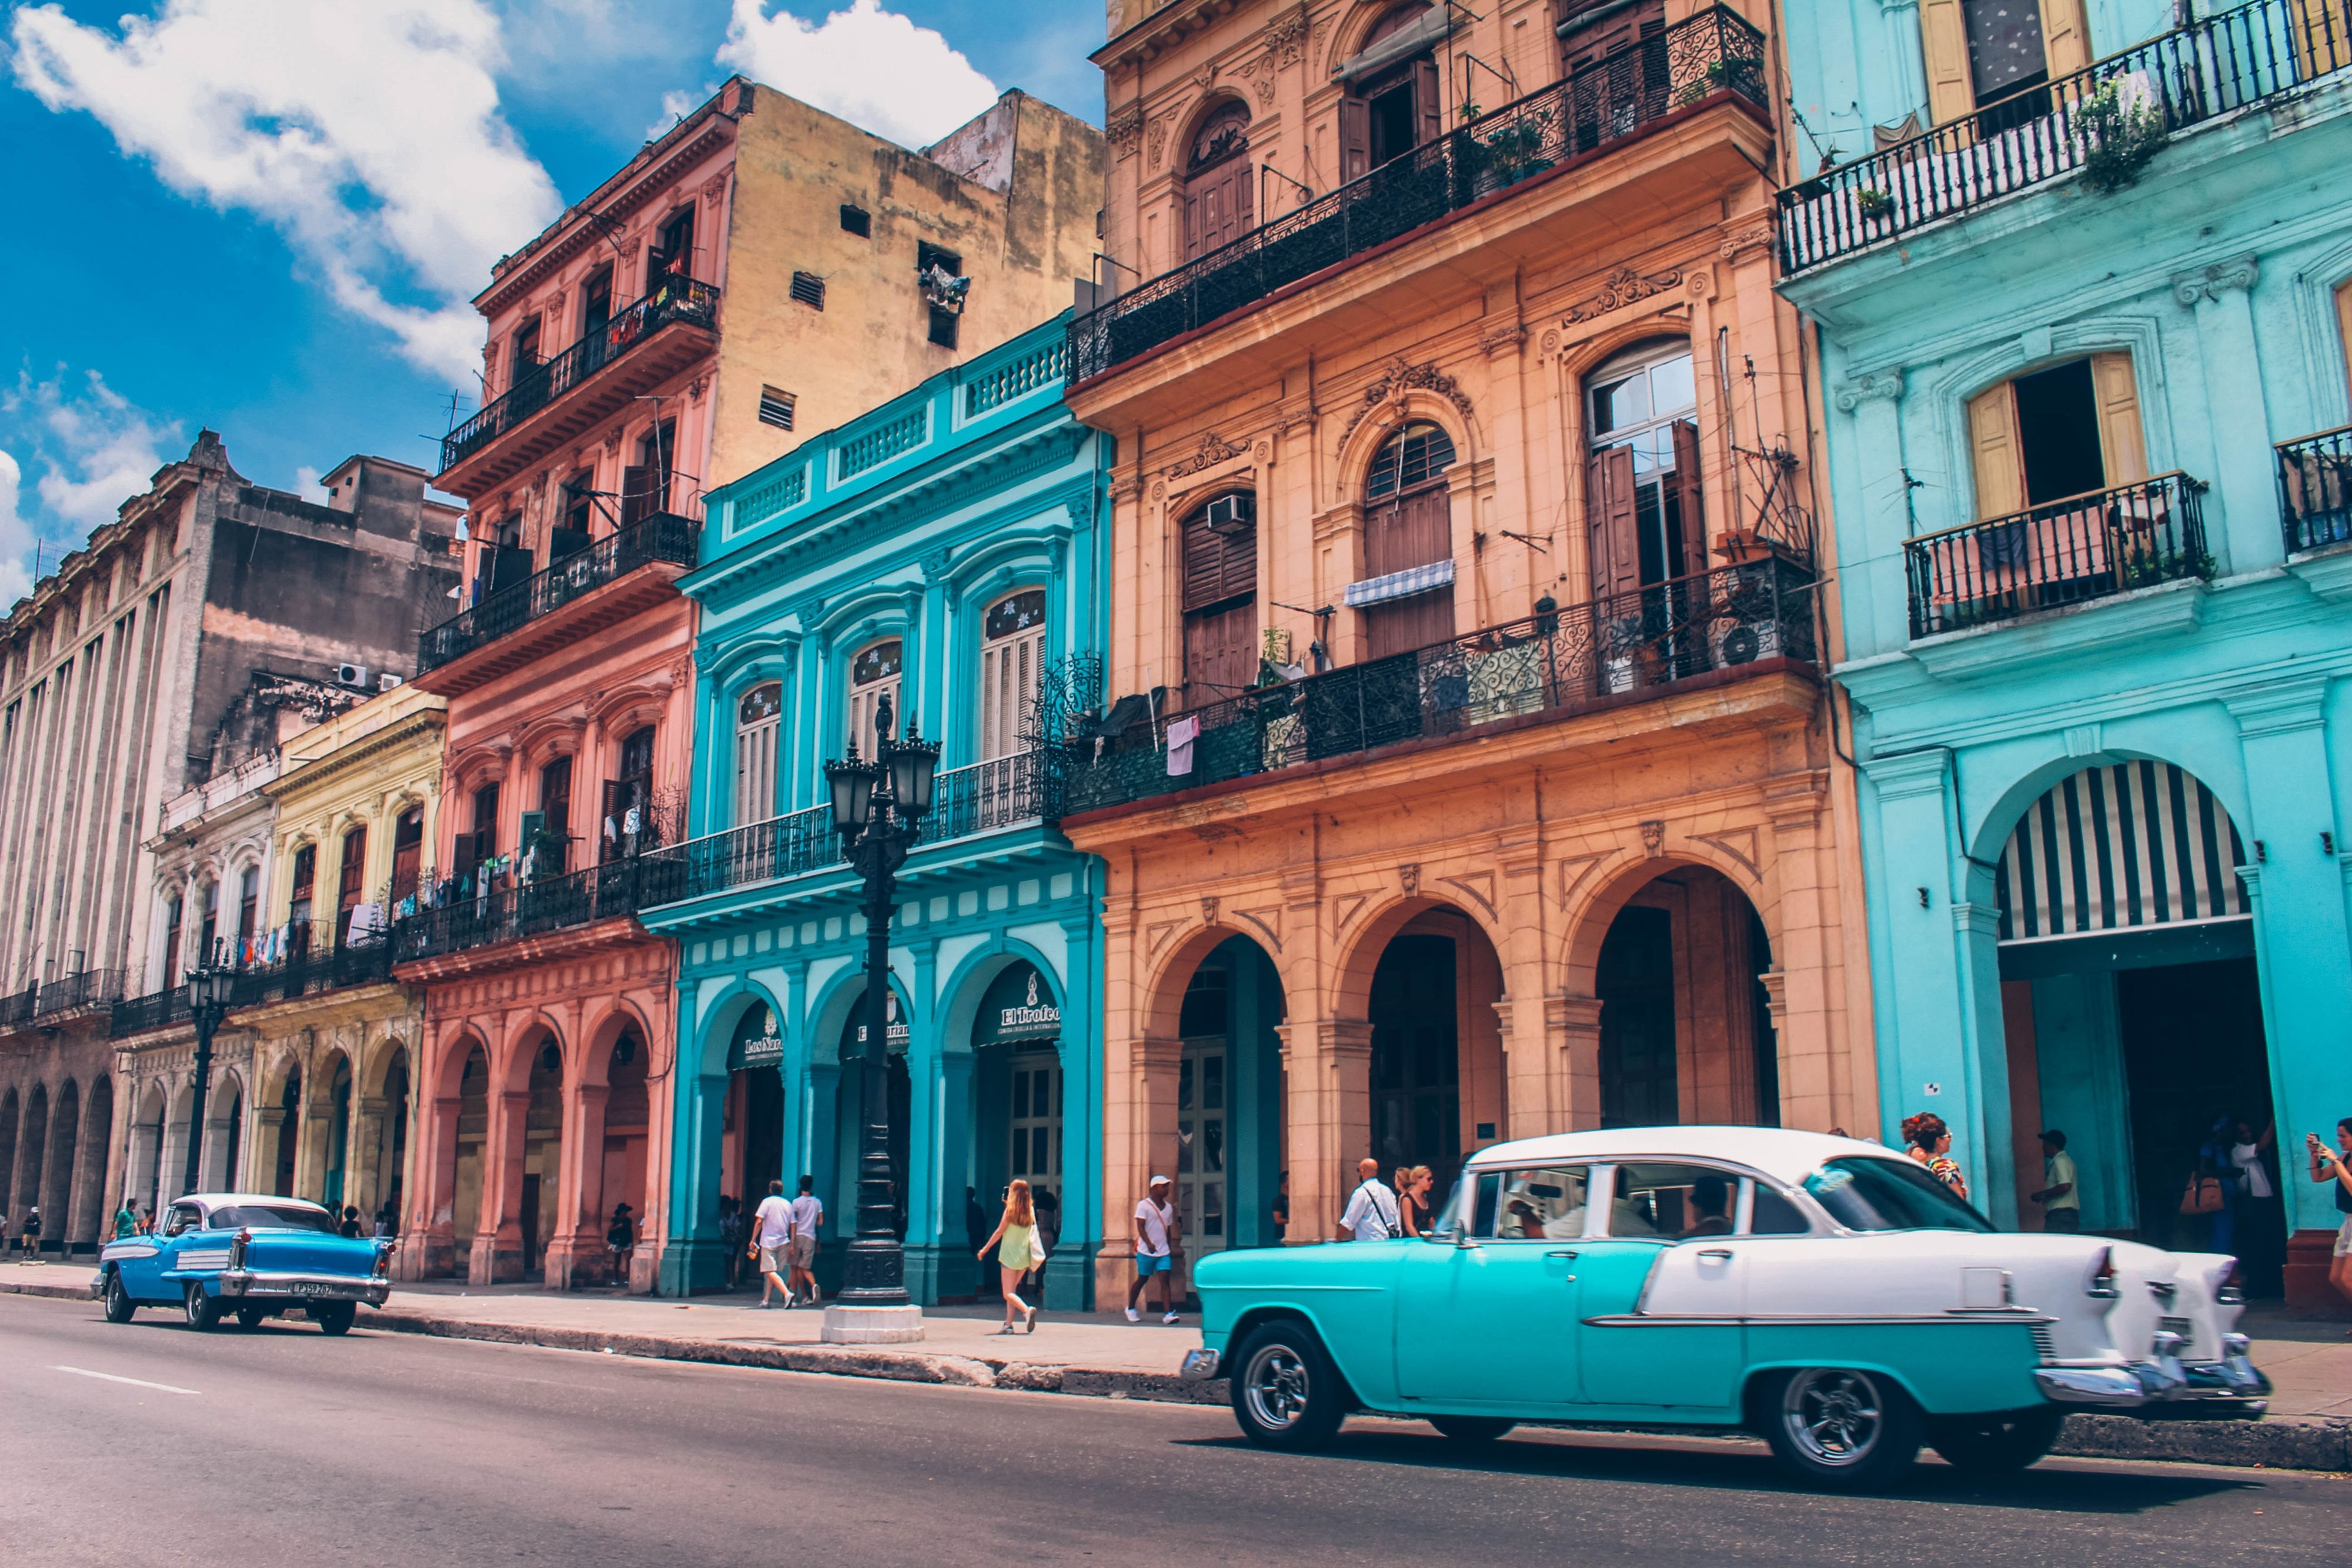 Best Hd Wallpapers 1366x768 Wallpaper Of Havana Architecture Street Desktop Picture